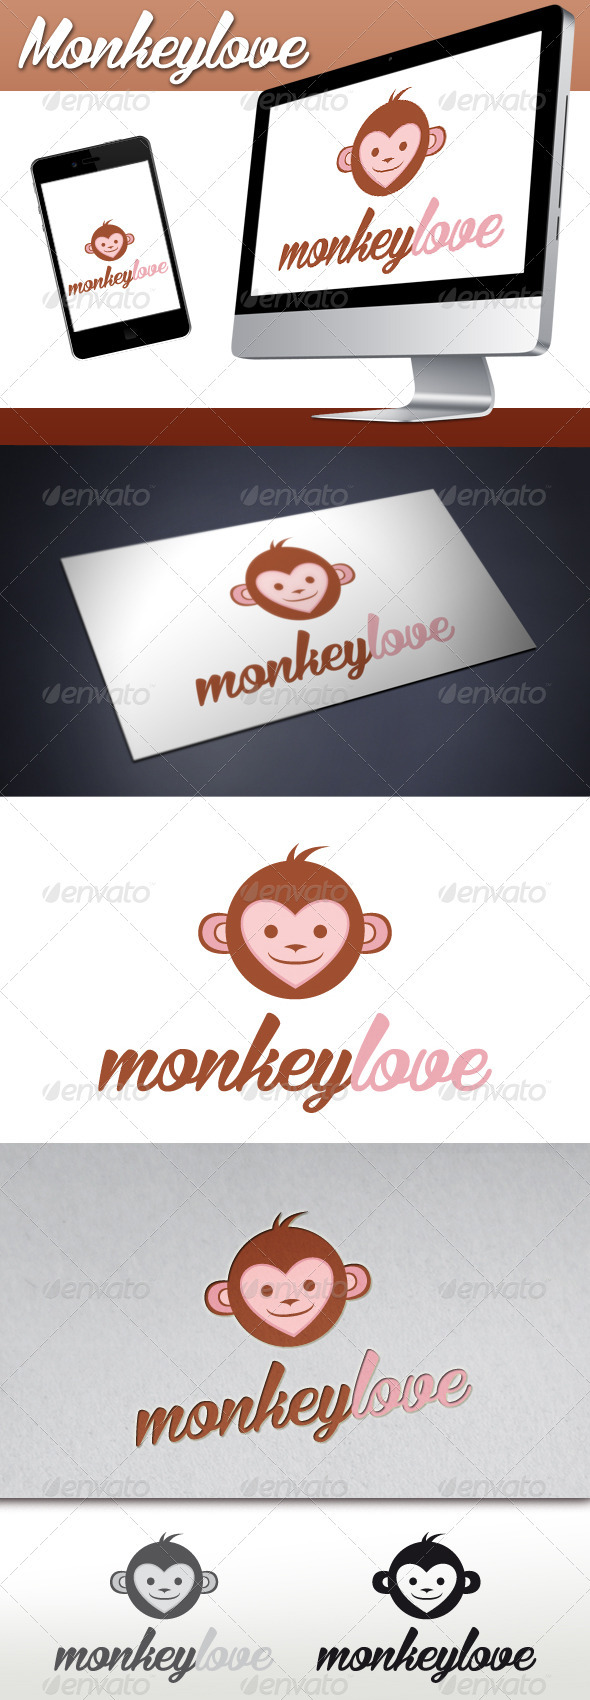 GraphicRiver Monkey Love Mascot Logo 3373418